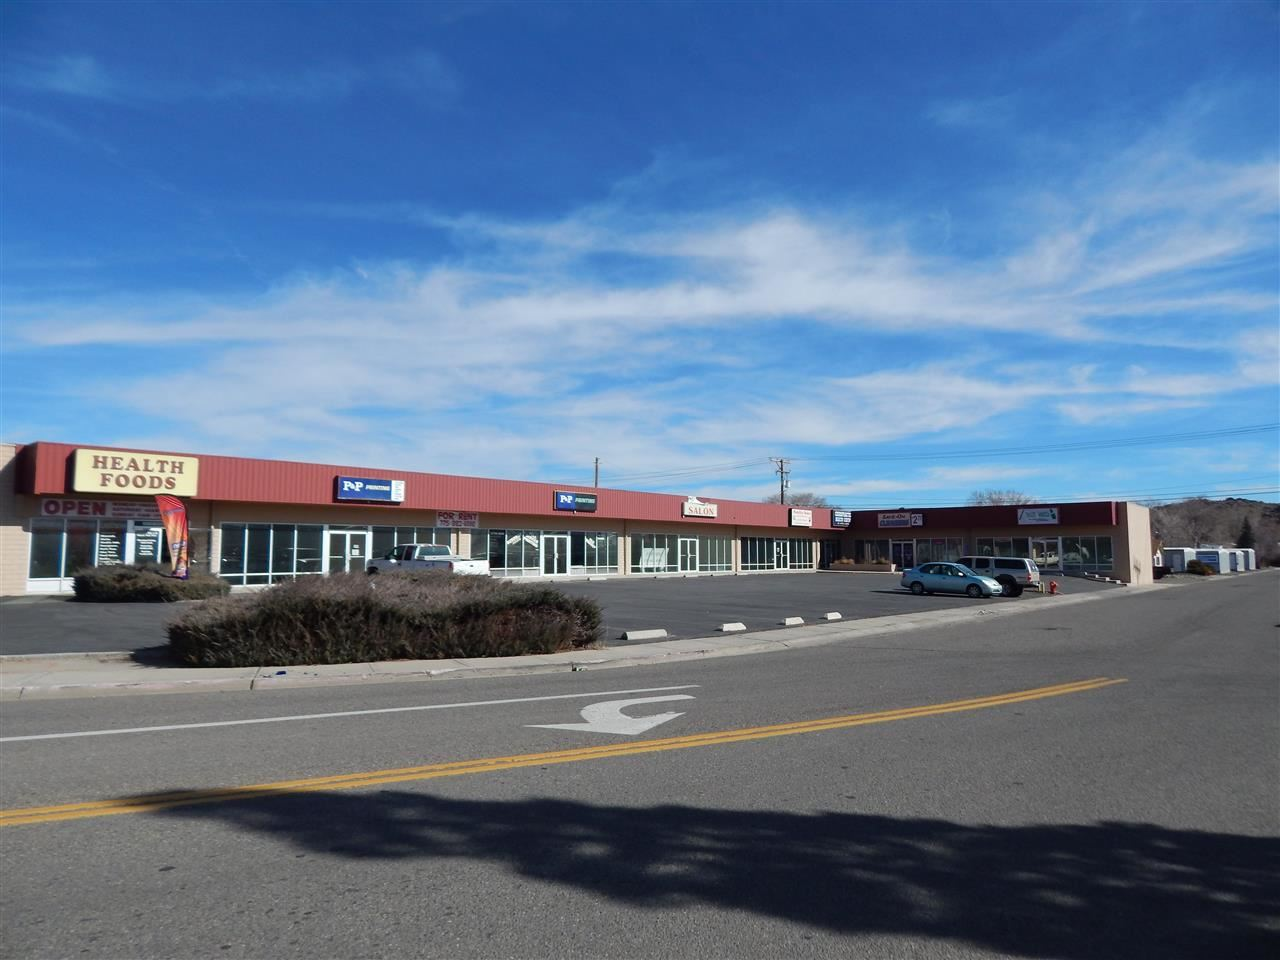 101 Hot Springs Rd #5, Carson City, NV 89706 - Carson City, NV real estate listing